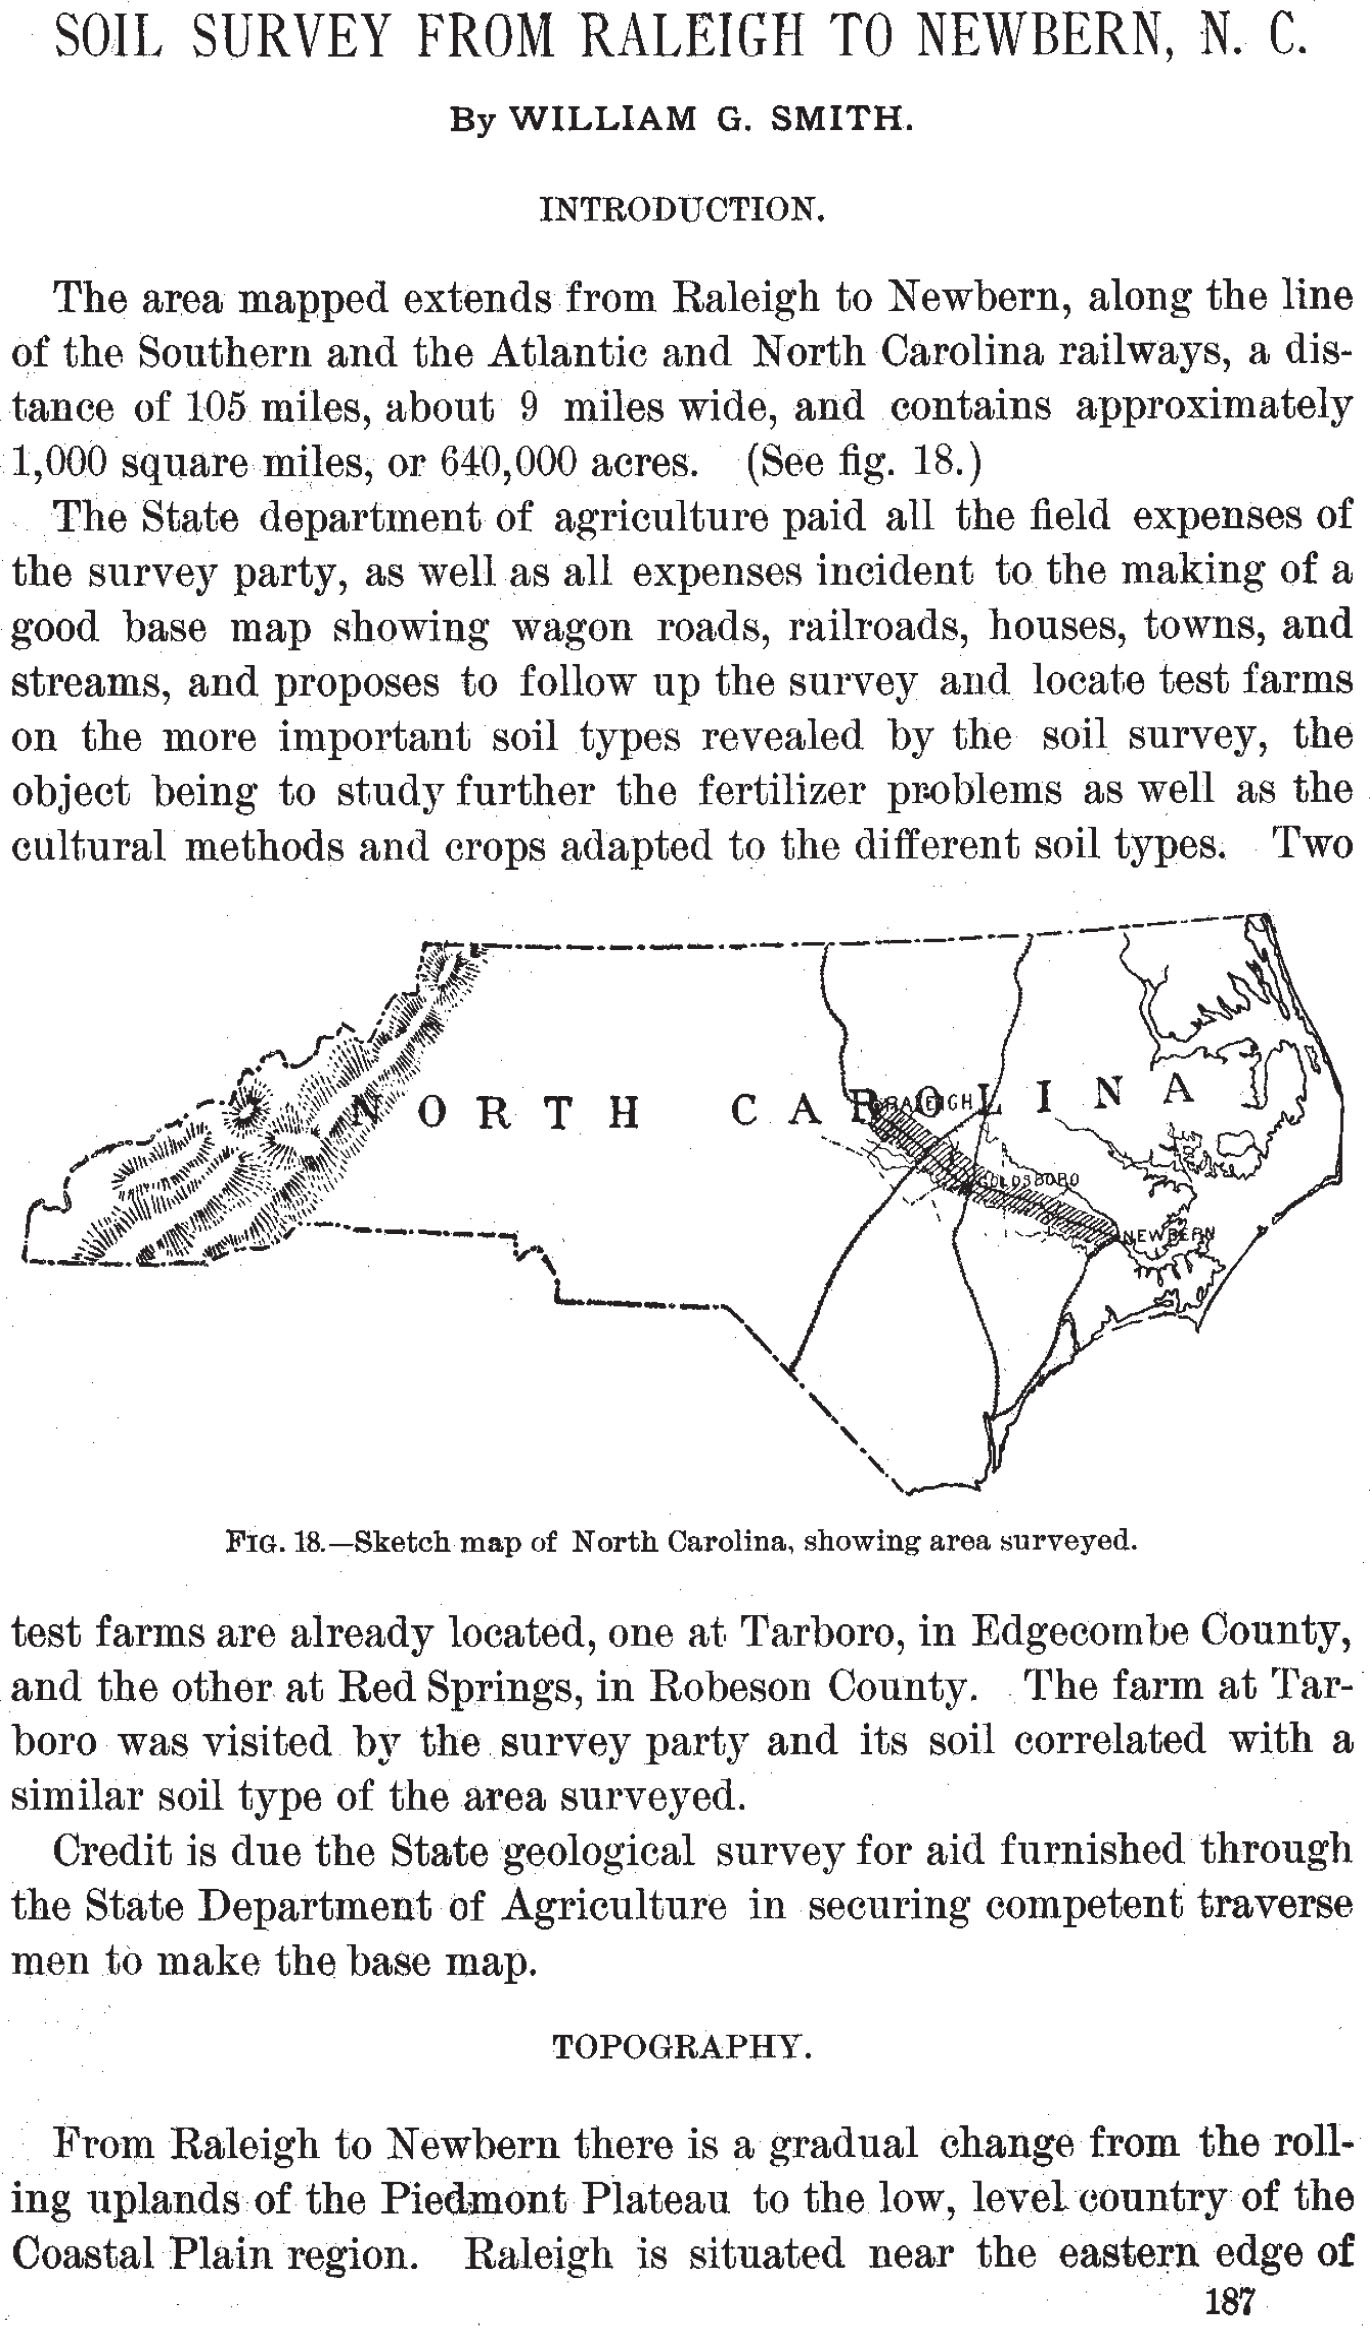 Soil Survey from Raleigh to Newbern NC